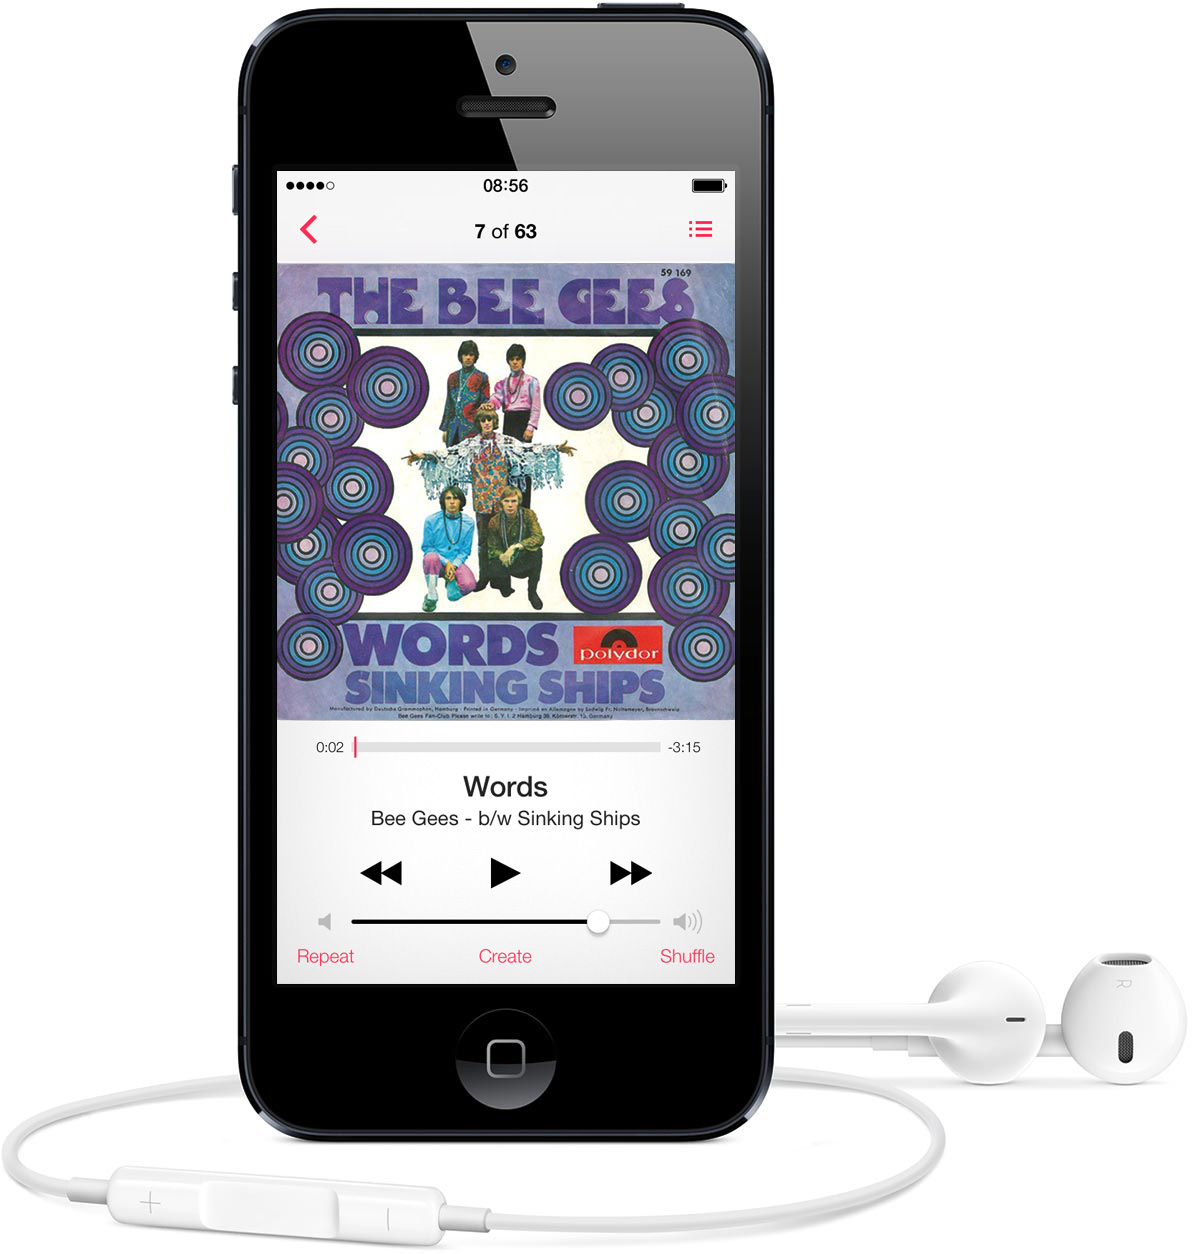 iphone-ios7-music